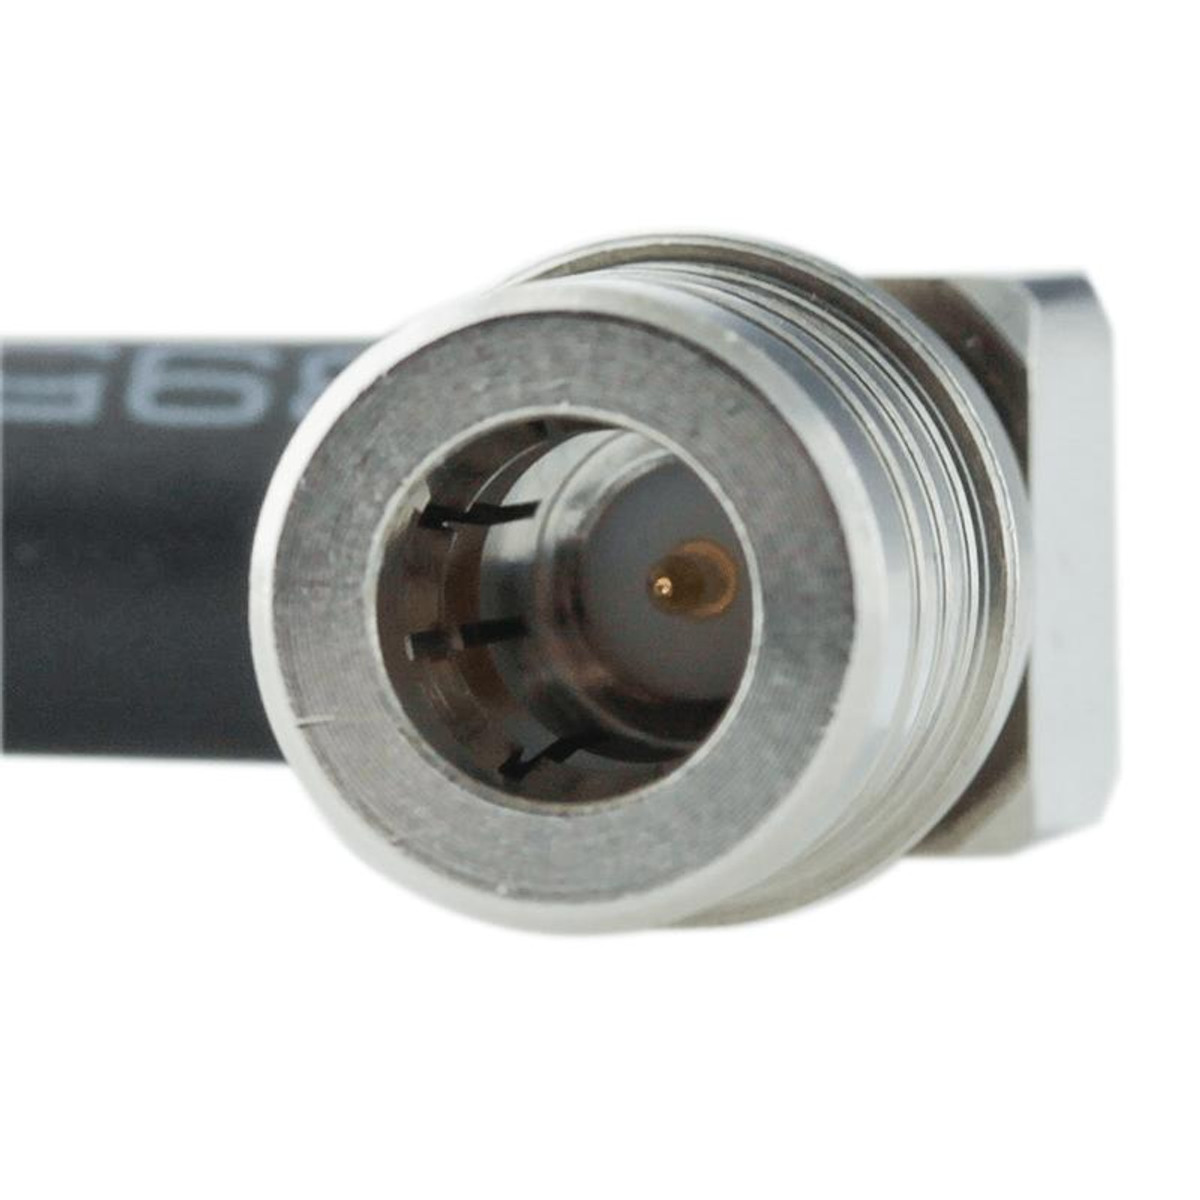 Bolton Tech Bolton Technical 2 meter N-Male Bulkhead to QMA-Male Angle Coax RF Pigtail Cable